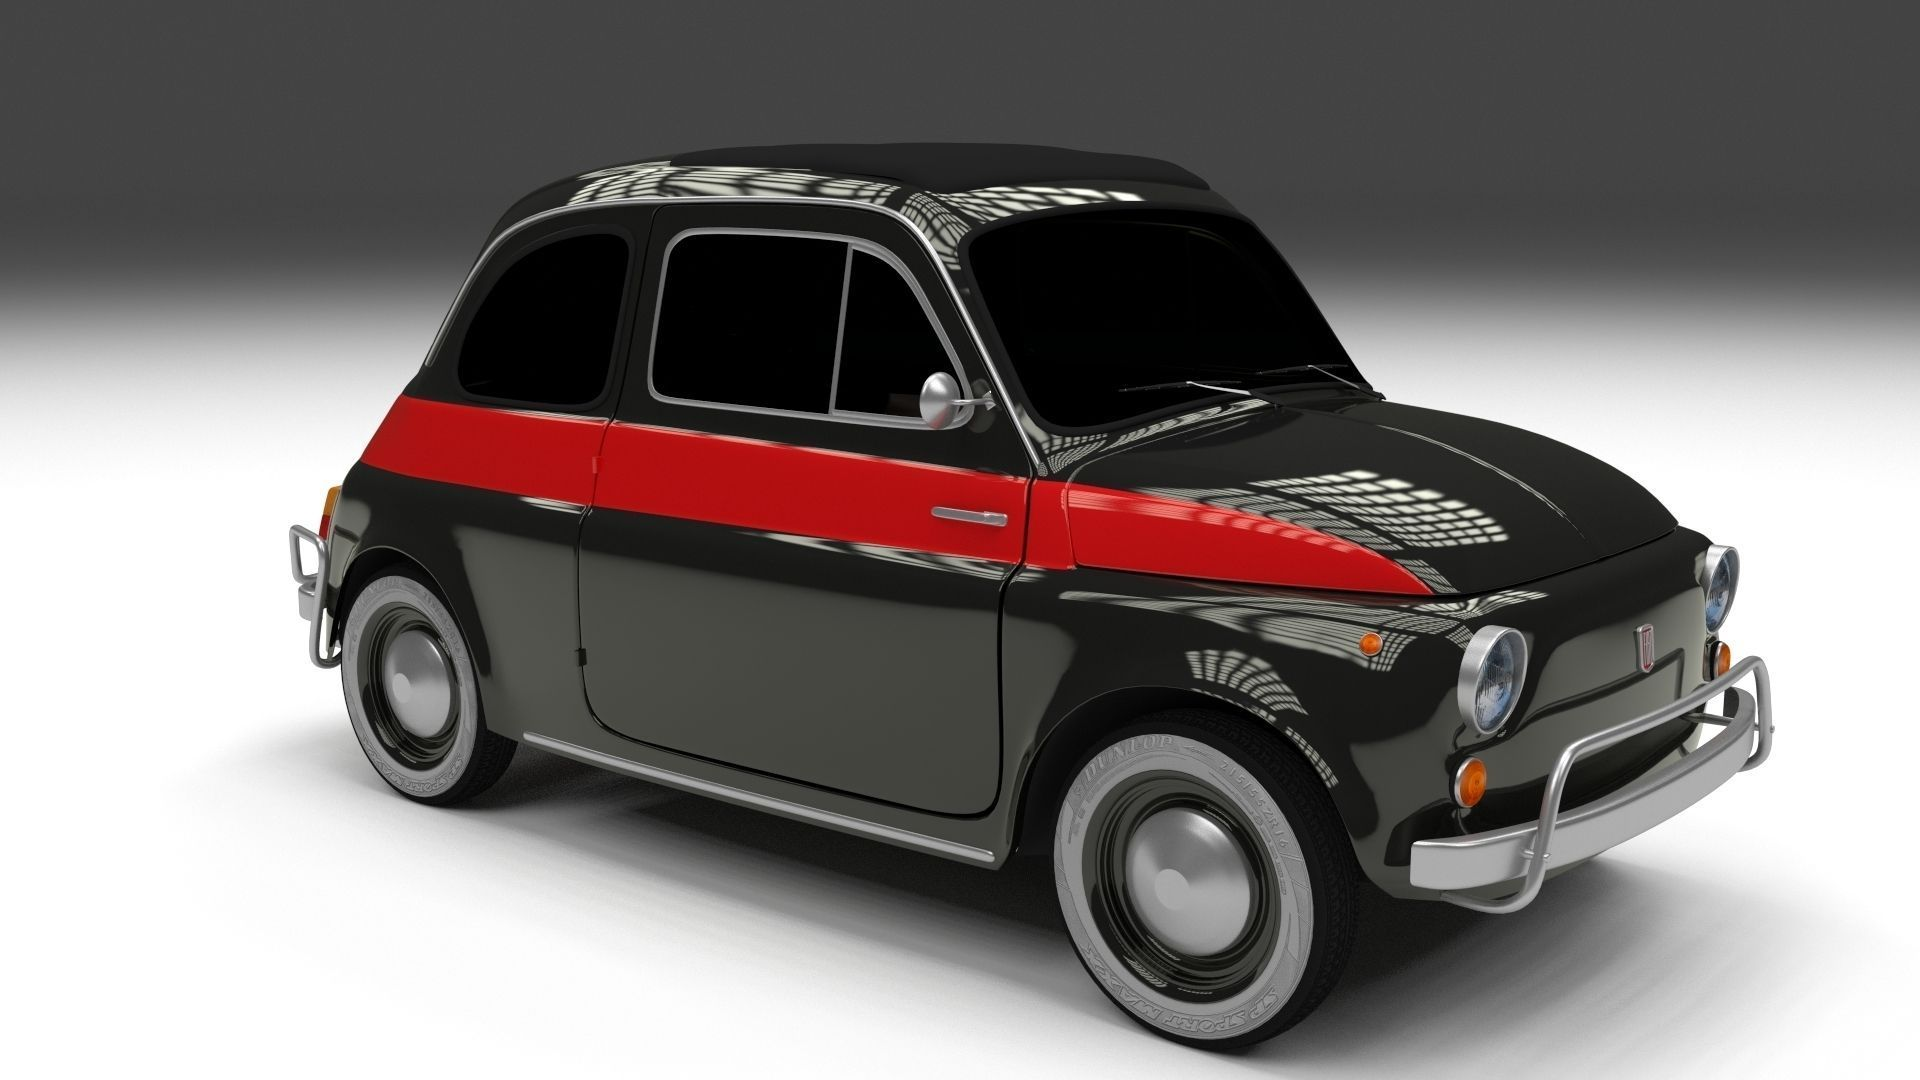 fiat 500 nuova sport 1958 hdri 3d model obj fbx stl blend. Black Bedroom Furniture Sets. Home Design Ideas